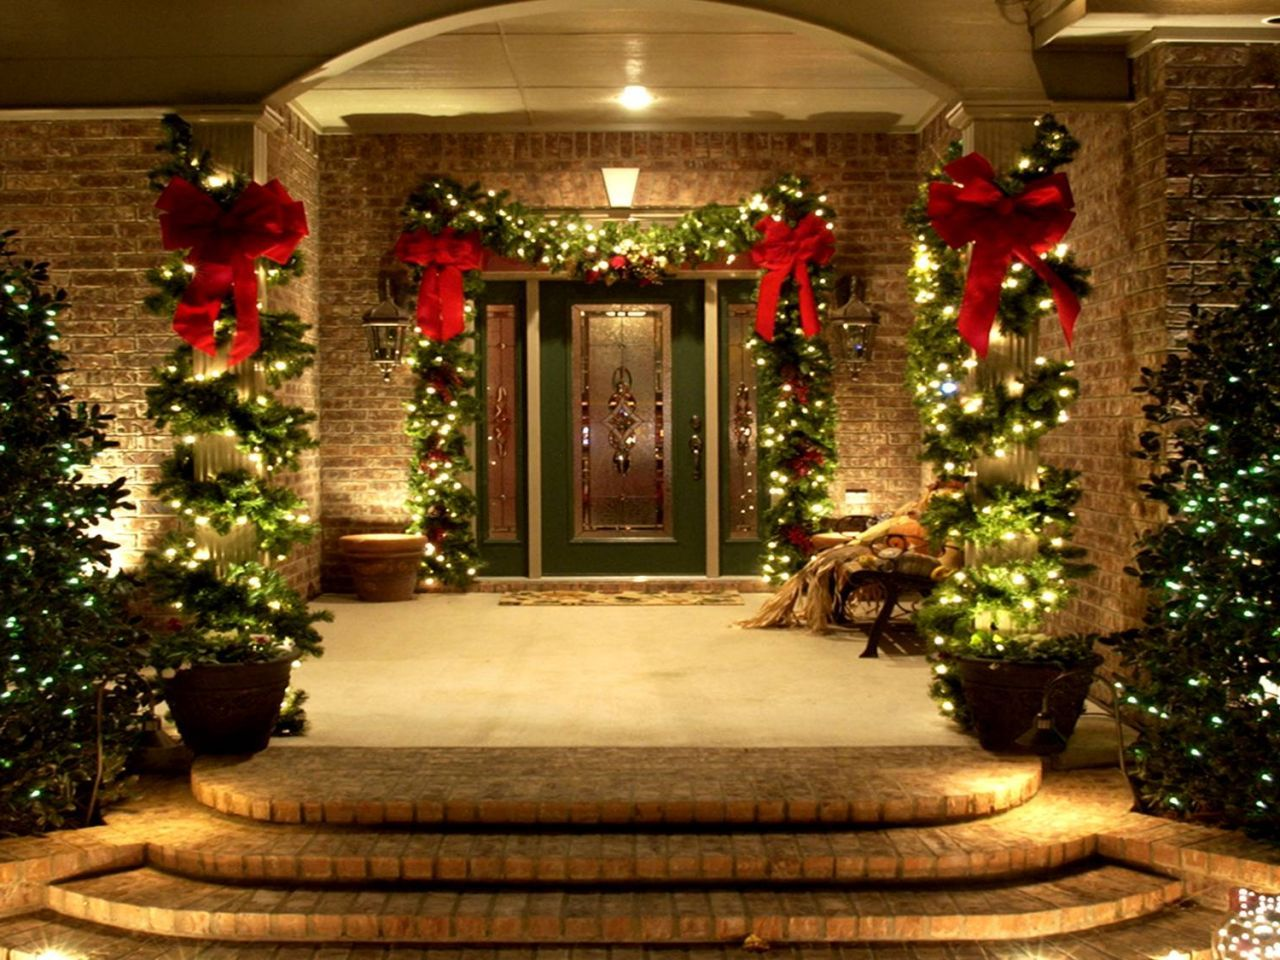 Use of lighting and decorative plants to the outdoor for Outdoor christmas decorations designs